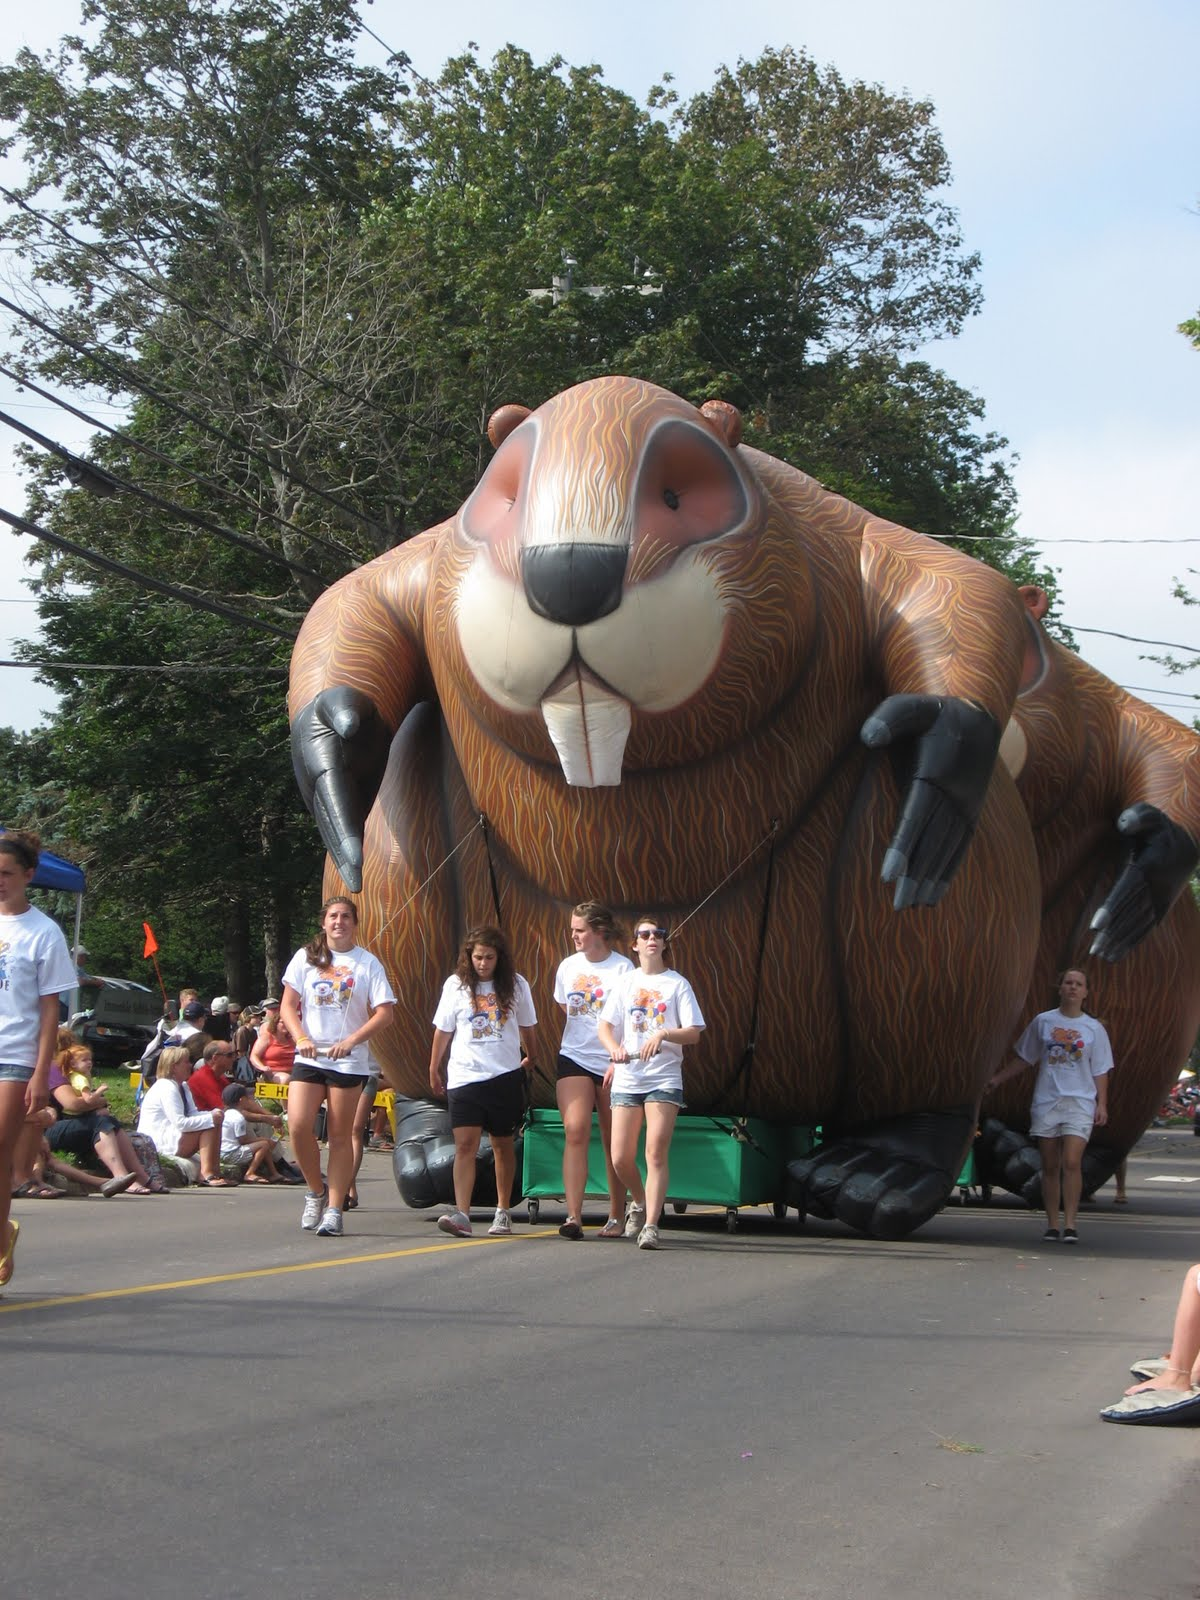 Giant Inflatable Beaver